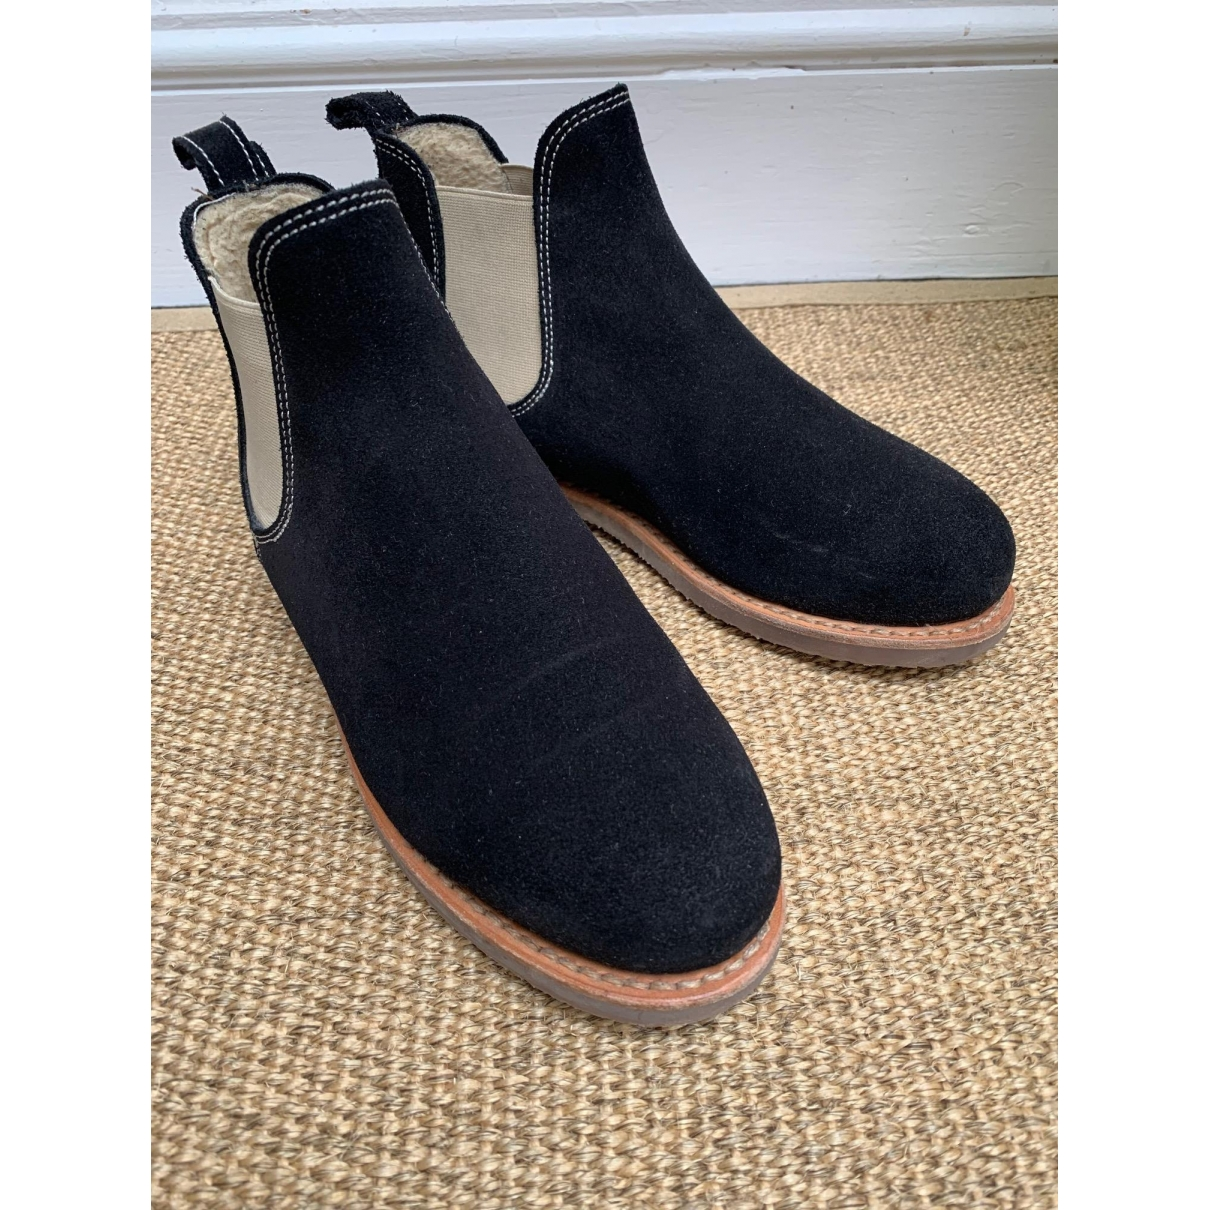 Penelope Chilvers \N Black Suede Ankle boots for Women 40 EU